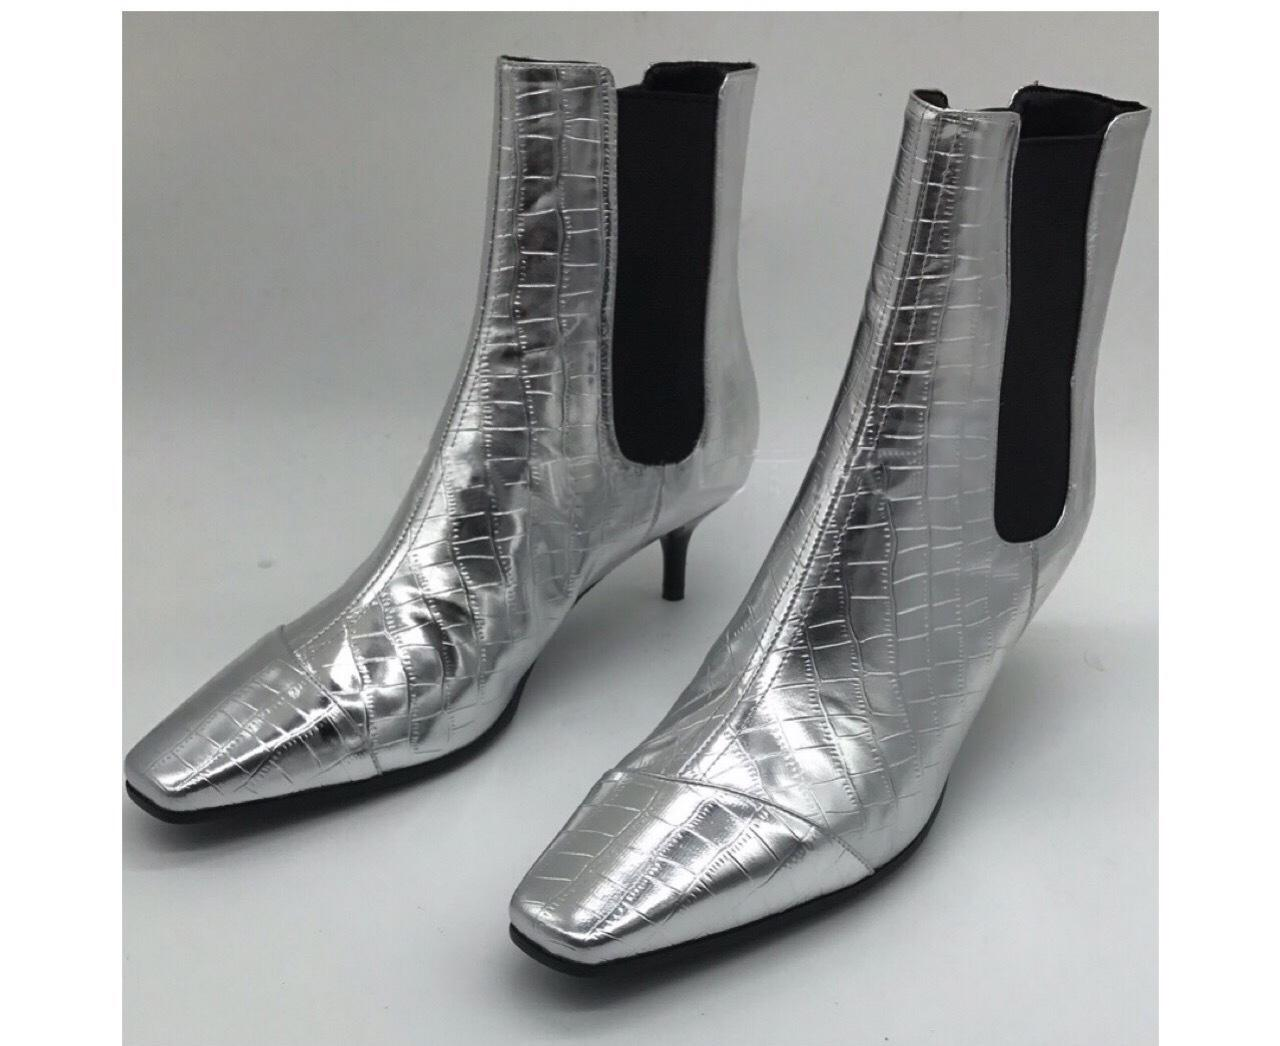 2019 Newest patent leather Short Boots silver blue high heels high quality square toe runway style Ankle Boots for women shoes